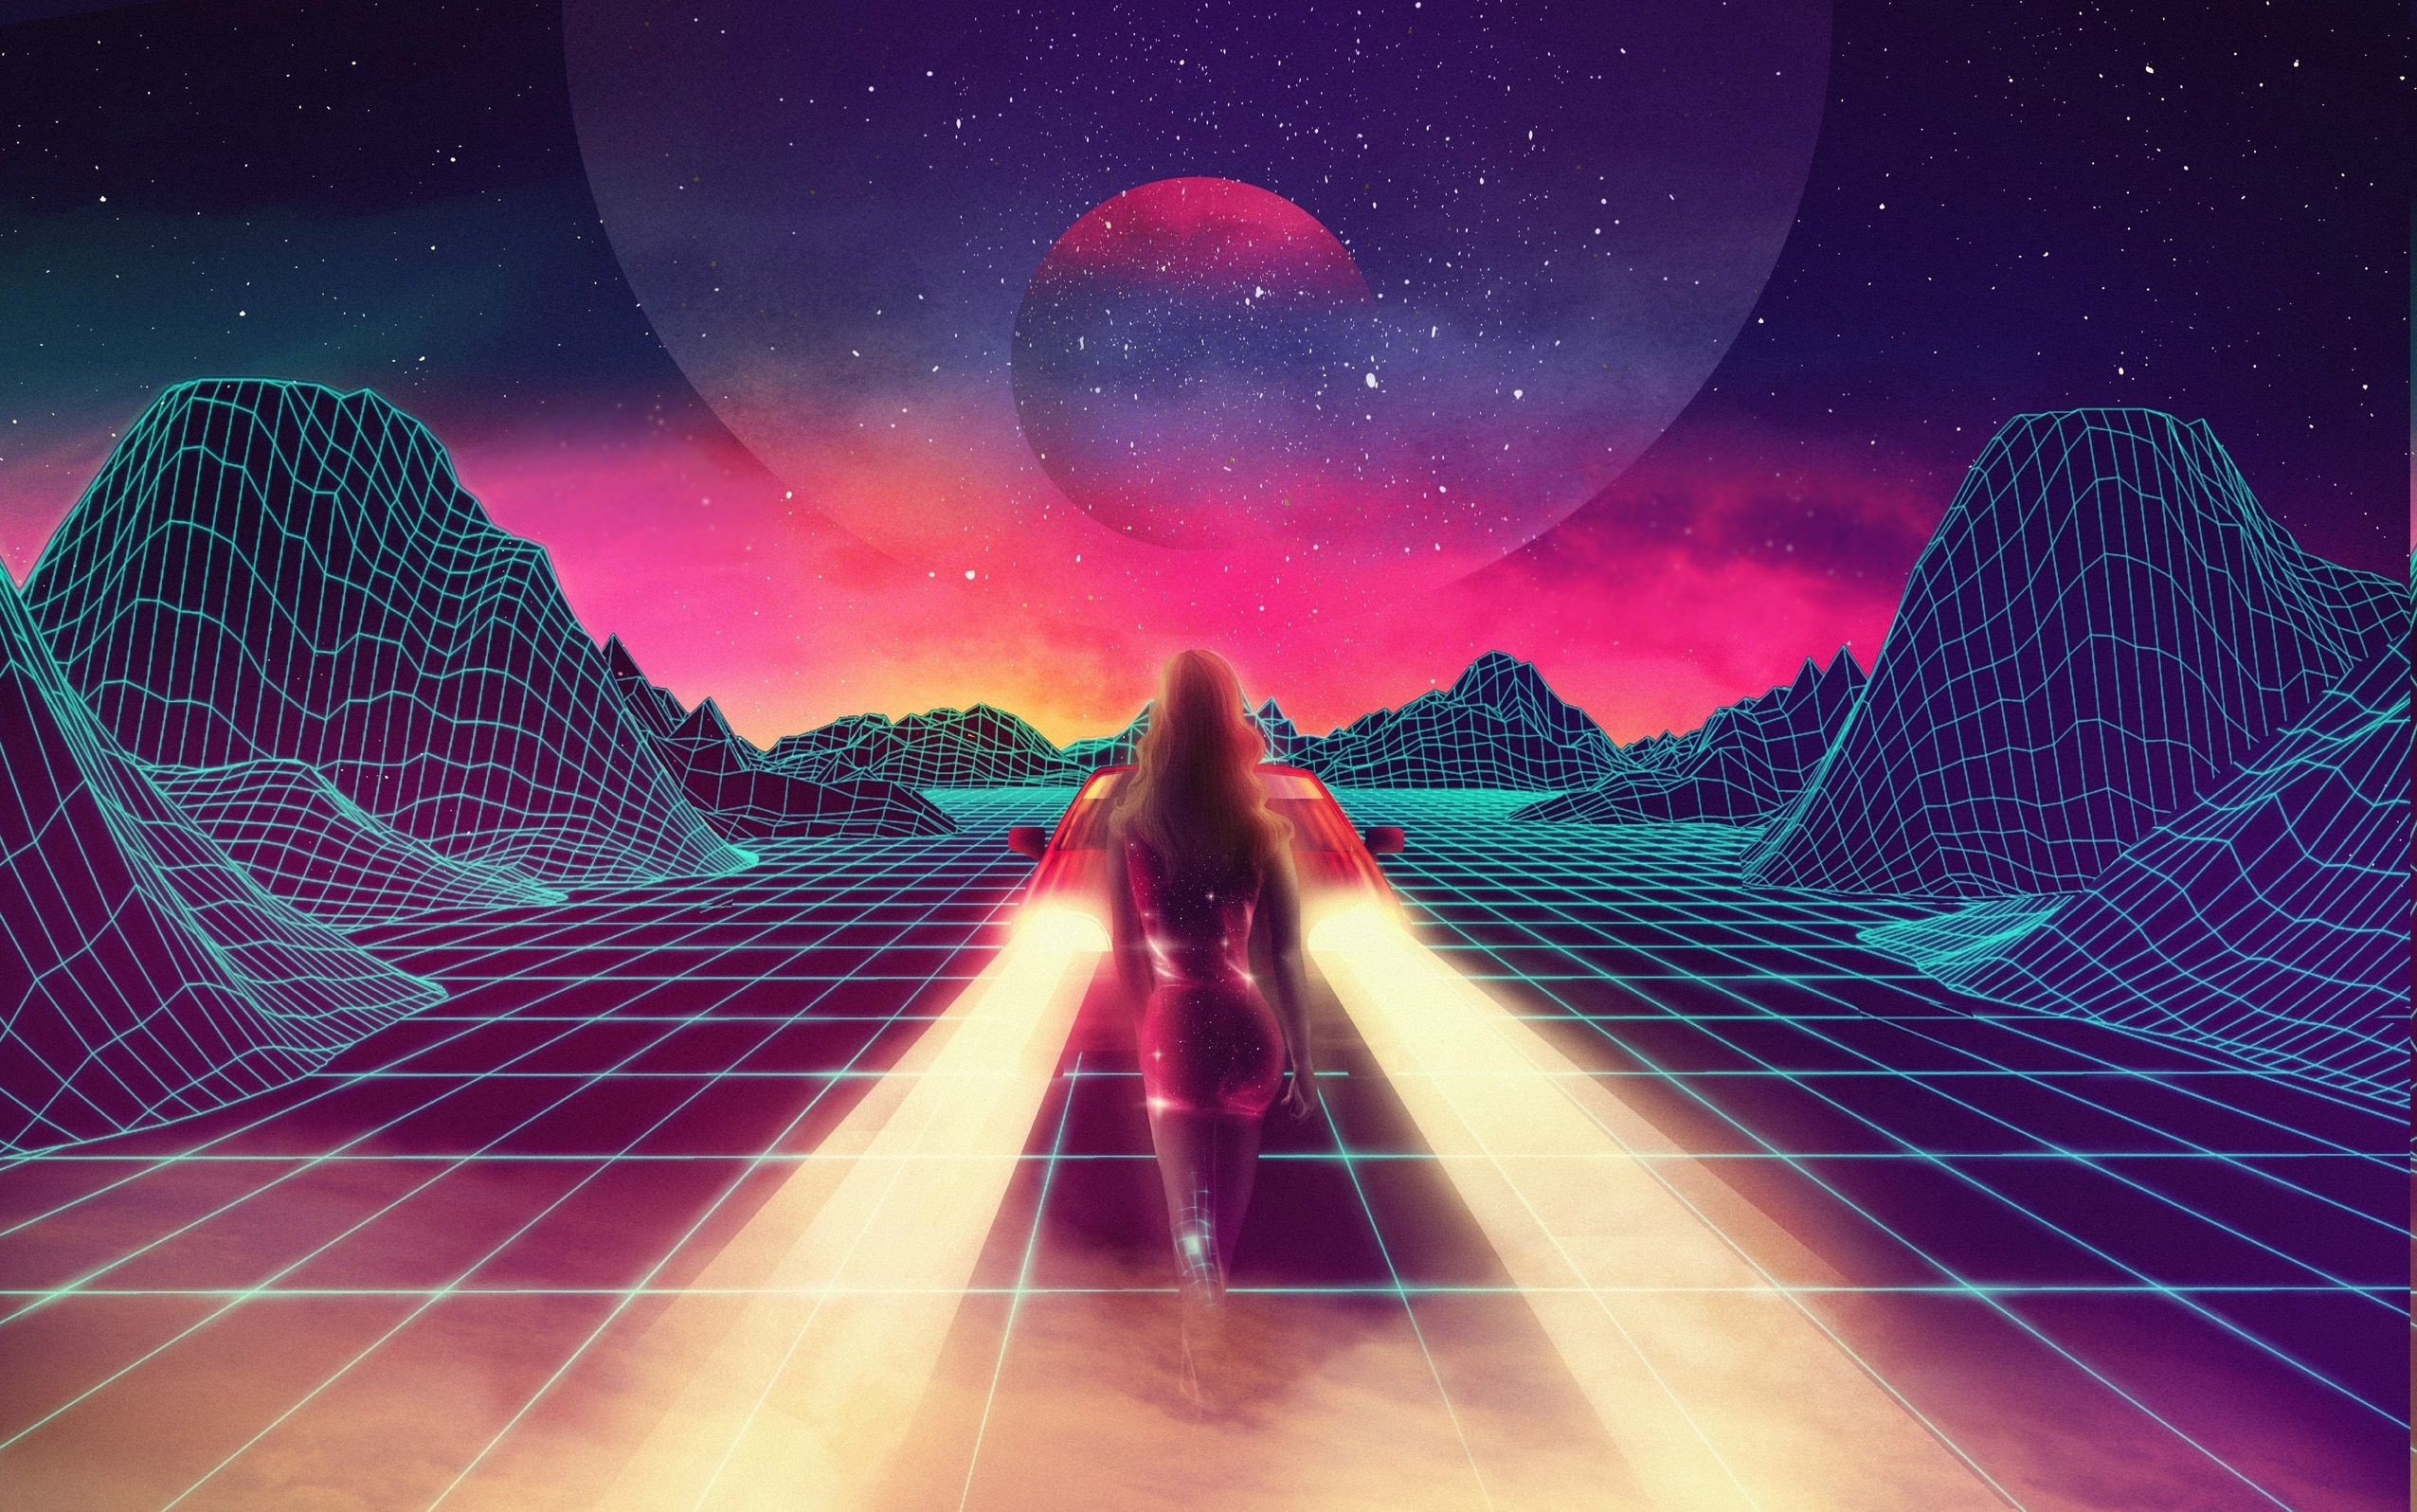 Synthwave Wallpaper Wallpapersafari HD Wallpapers Download Free Images Wallpaper [1000image.com]